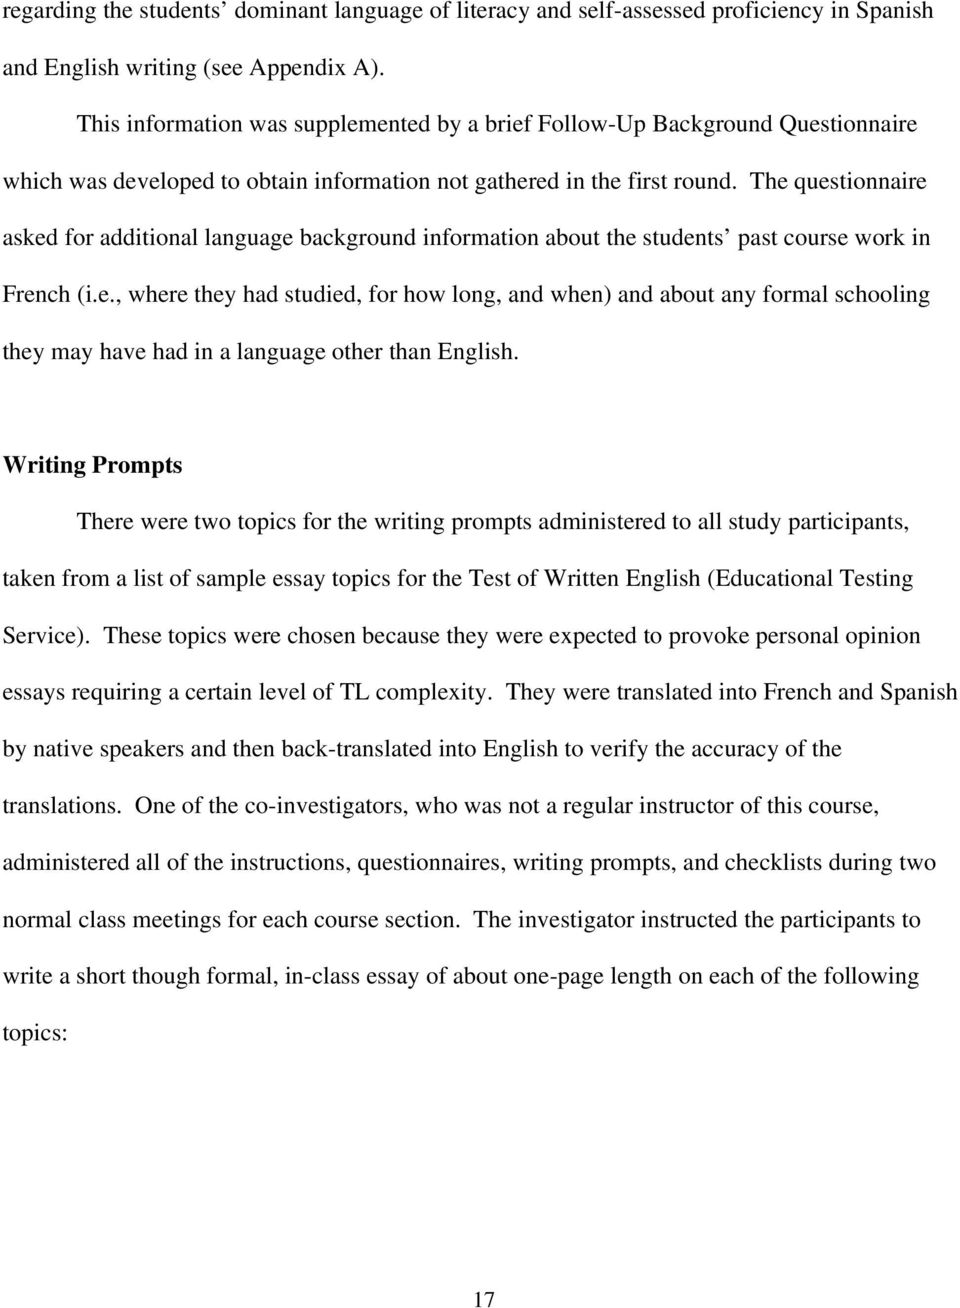 argumentative essay sample high school high school graduation  student council essay ideas problem solution essay ideas problem french language essay topics informative essay topics